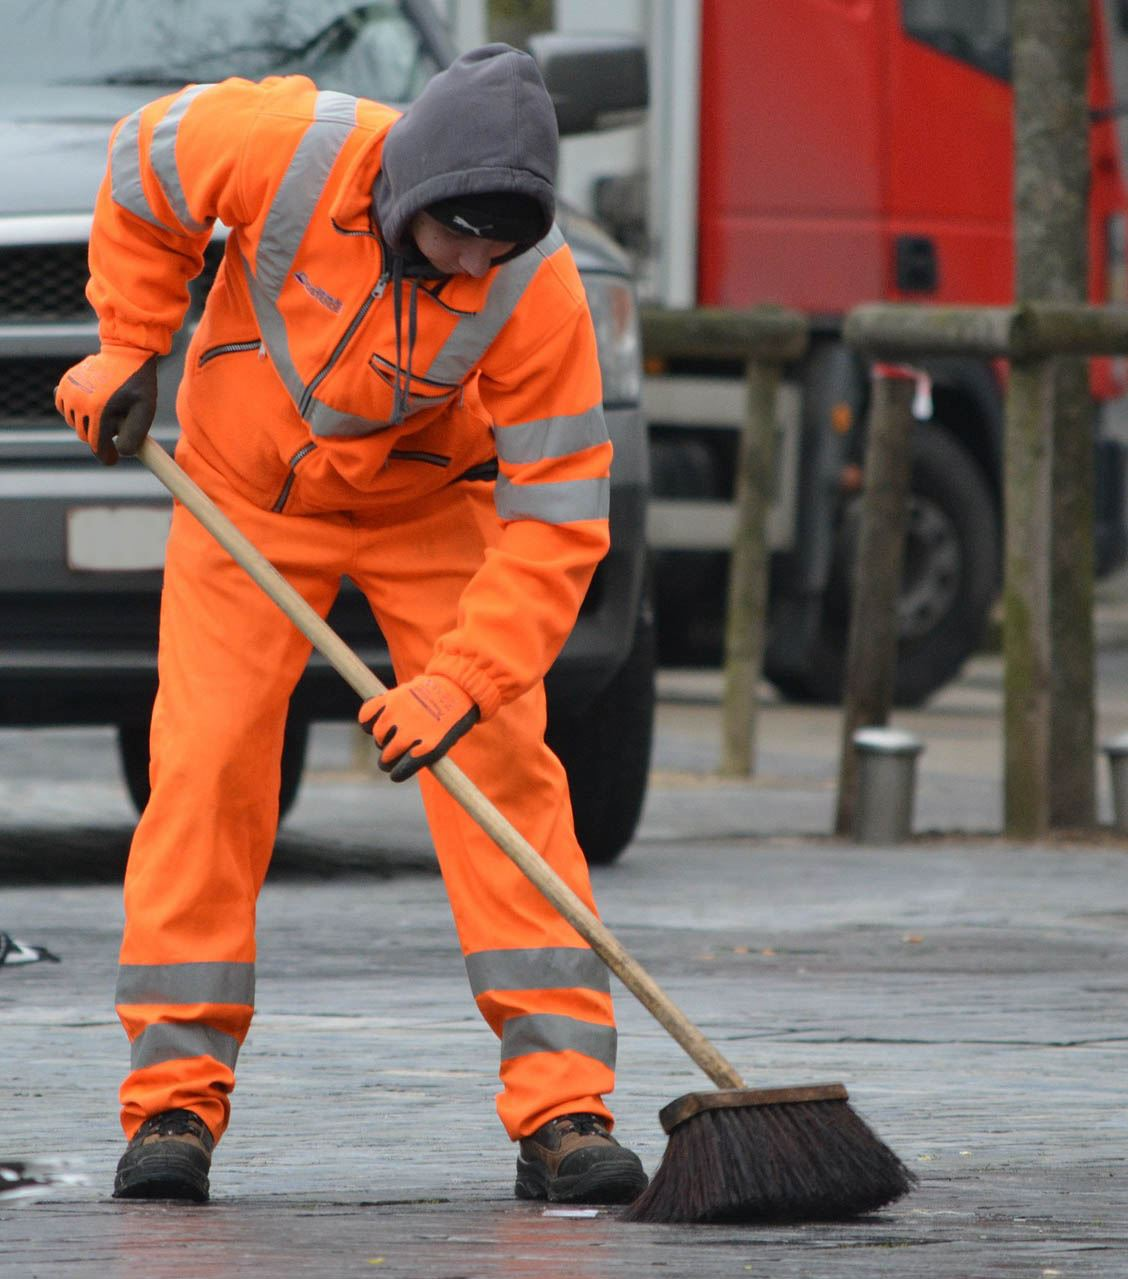 man wearing an orange suit sweeping a roadway to remove debris